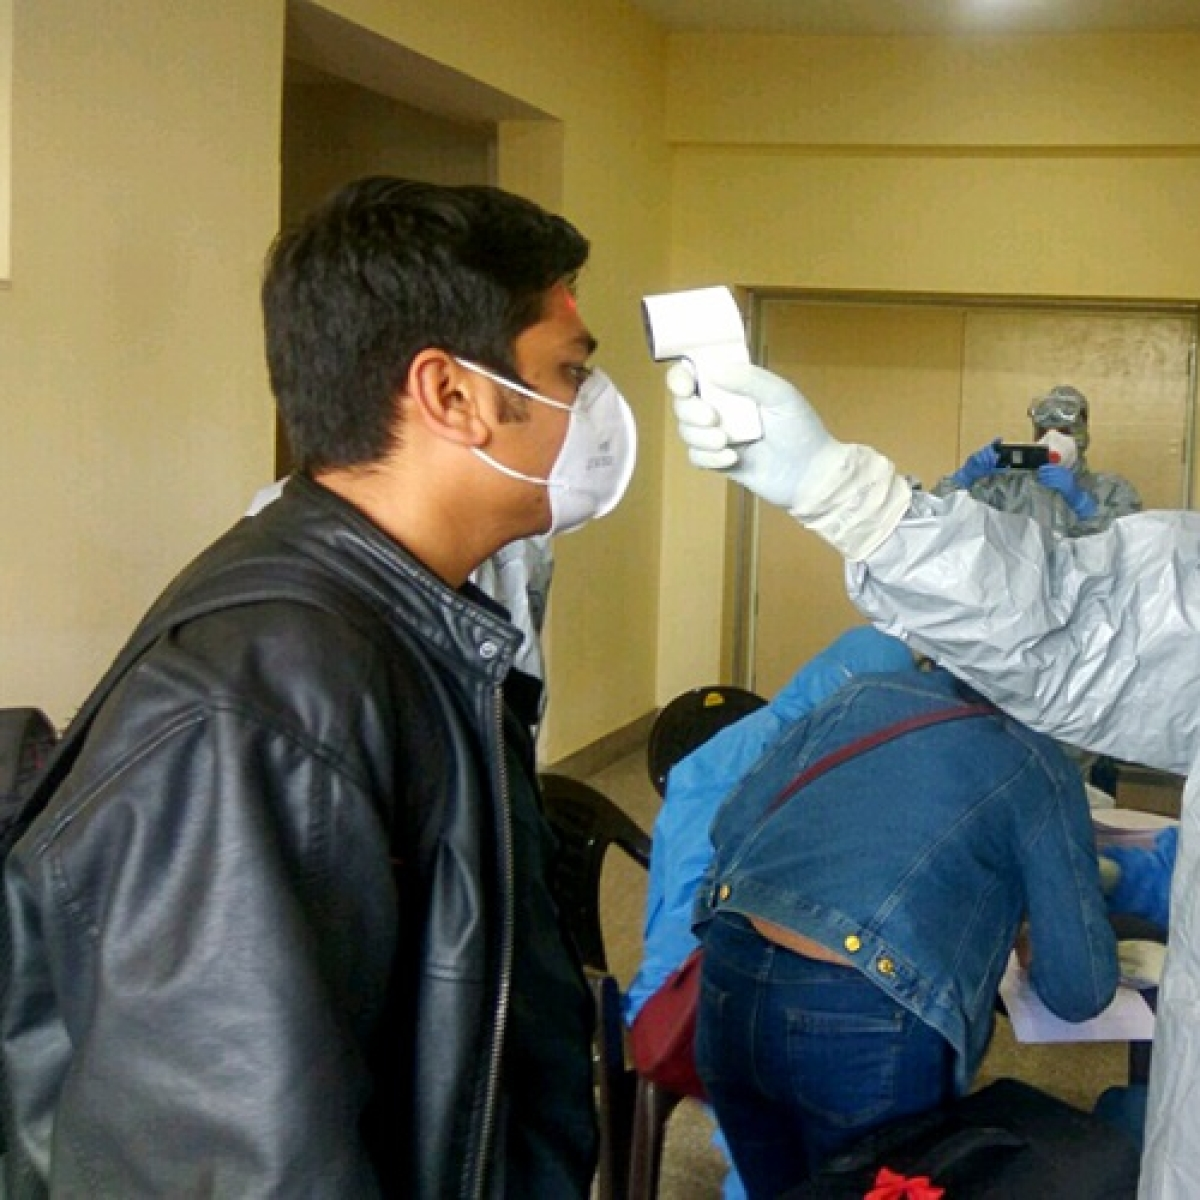 Coronavirus updates from India and the world: With 6,535 more cases, India's COVID-19 tally reaches 1,45,380